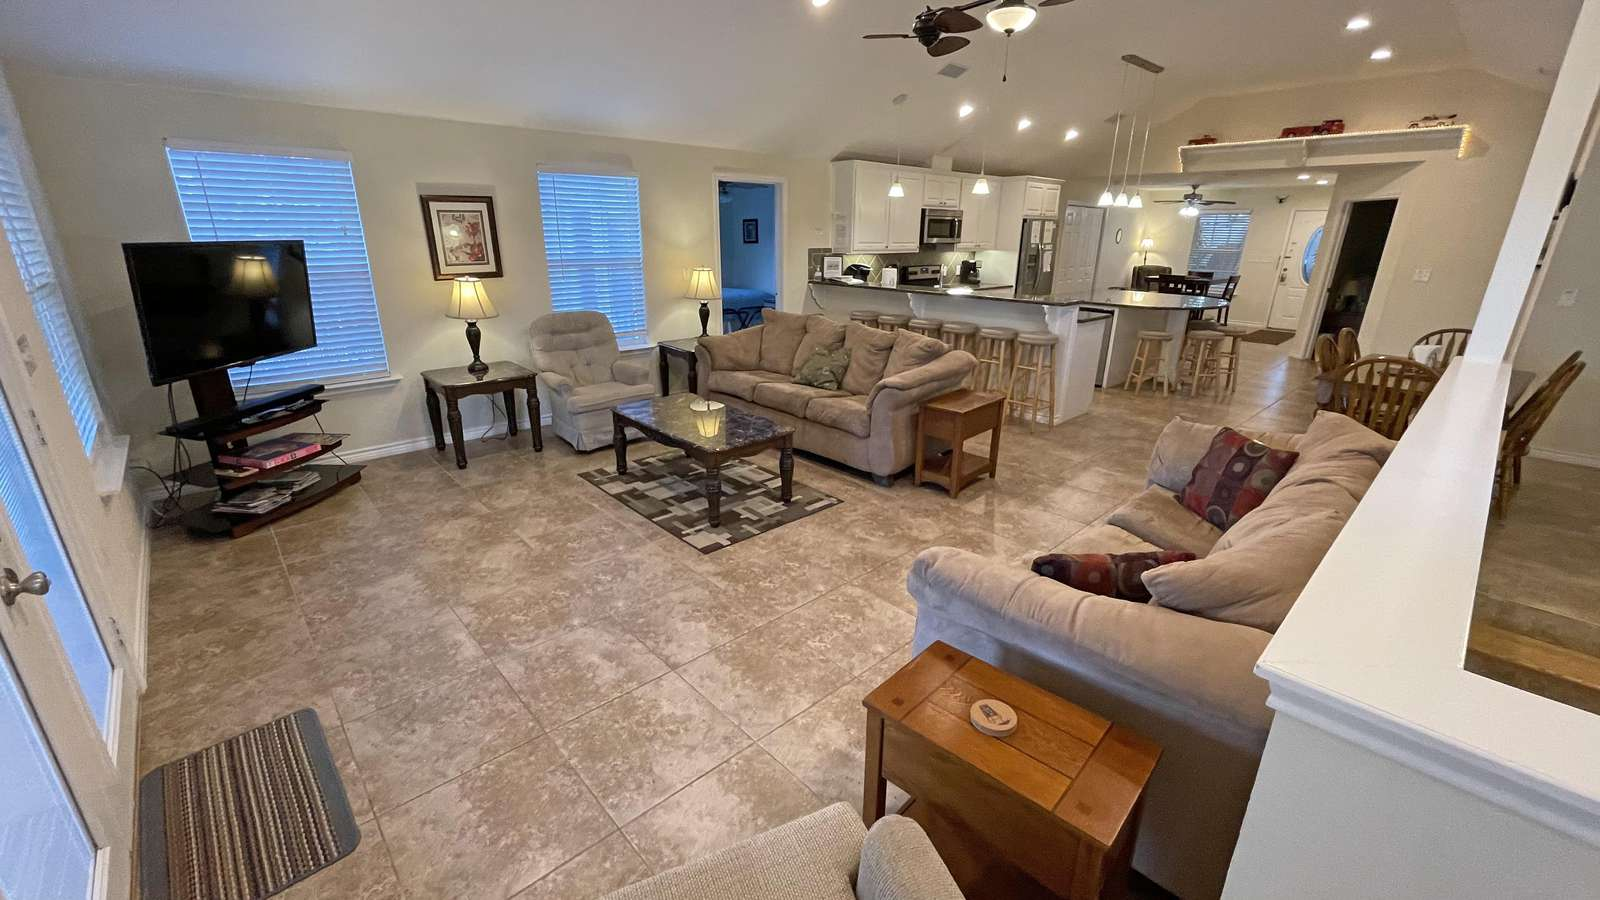 The open floor plan allows all guests to mingle and enjoy family time together.